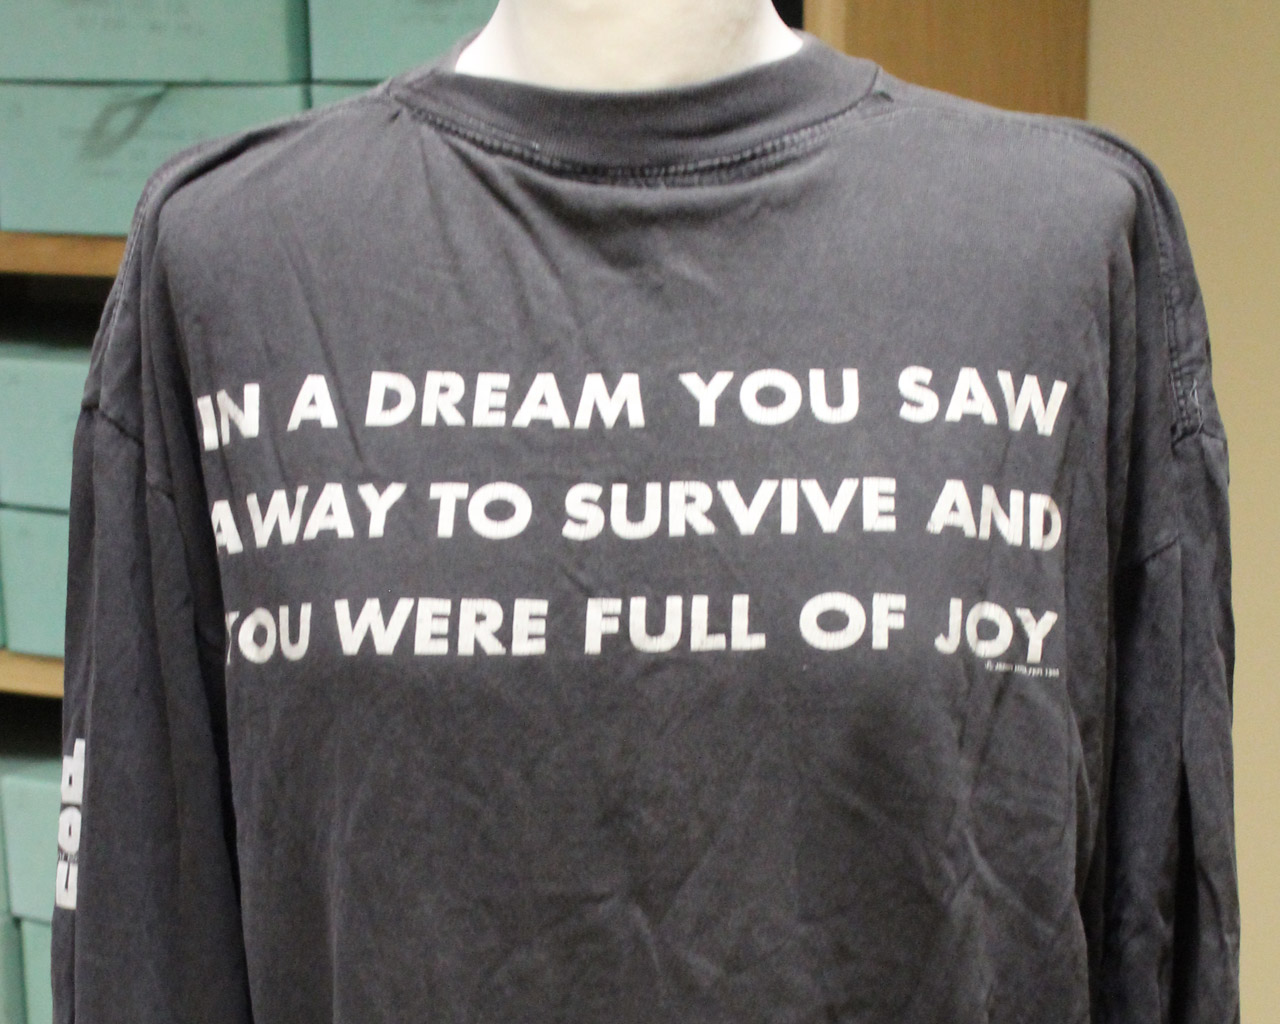 T-shirt for the Red Hot Organization, Jenny Holzer, 1990